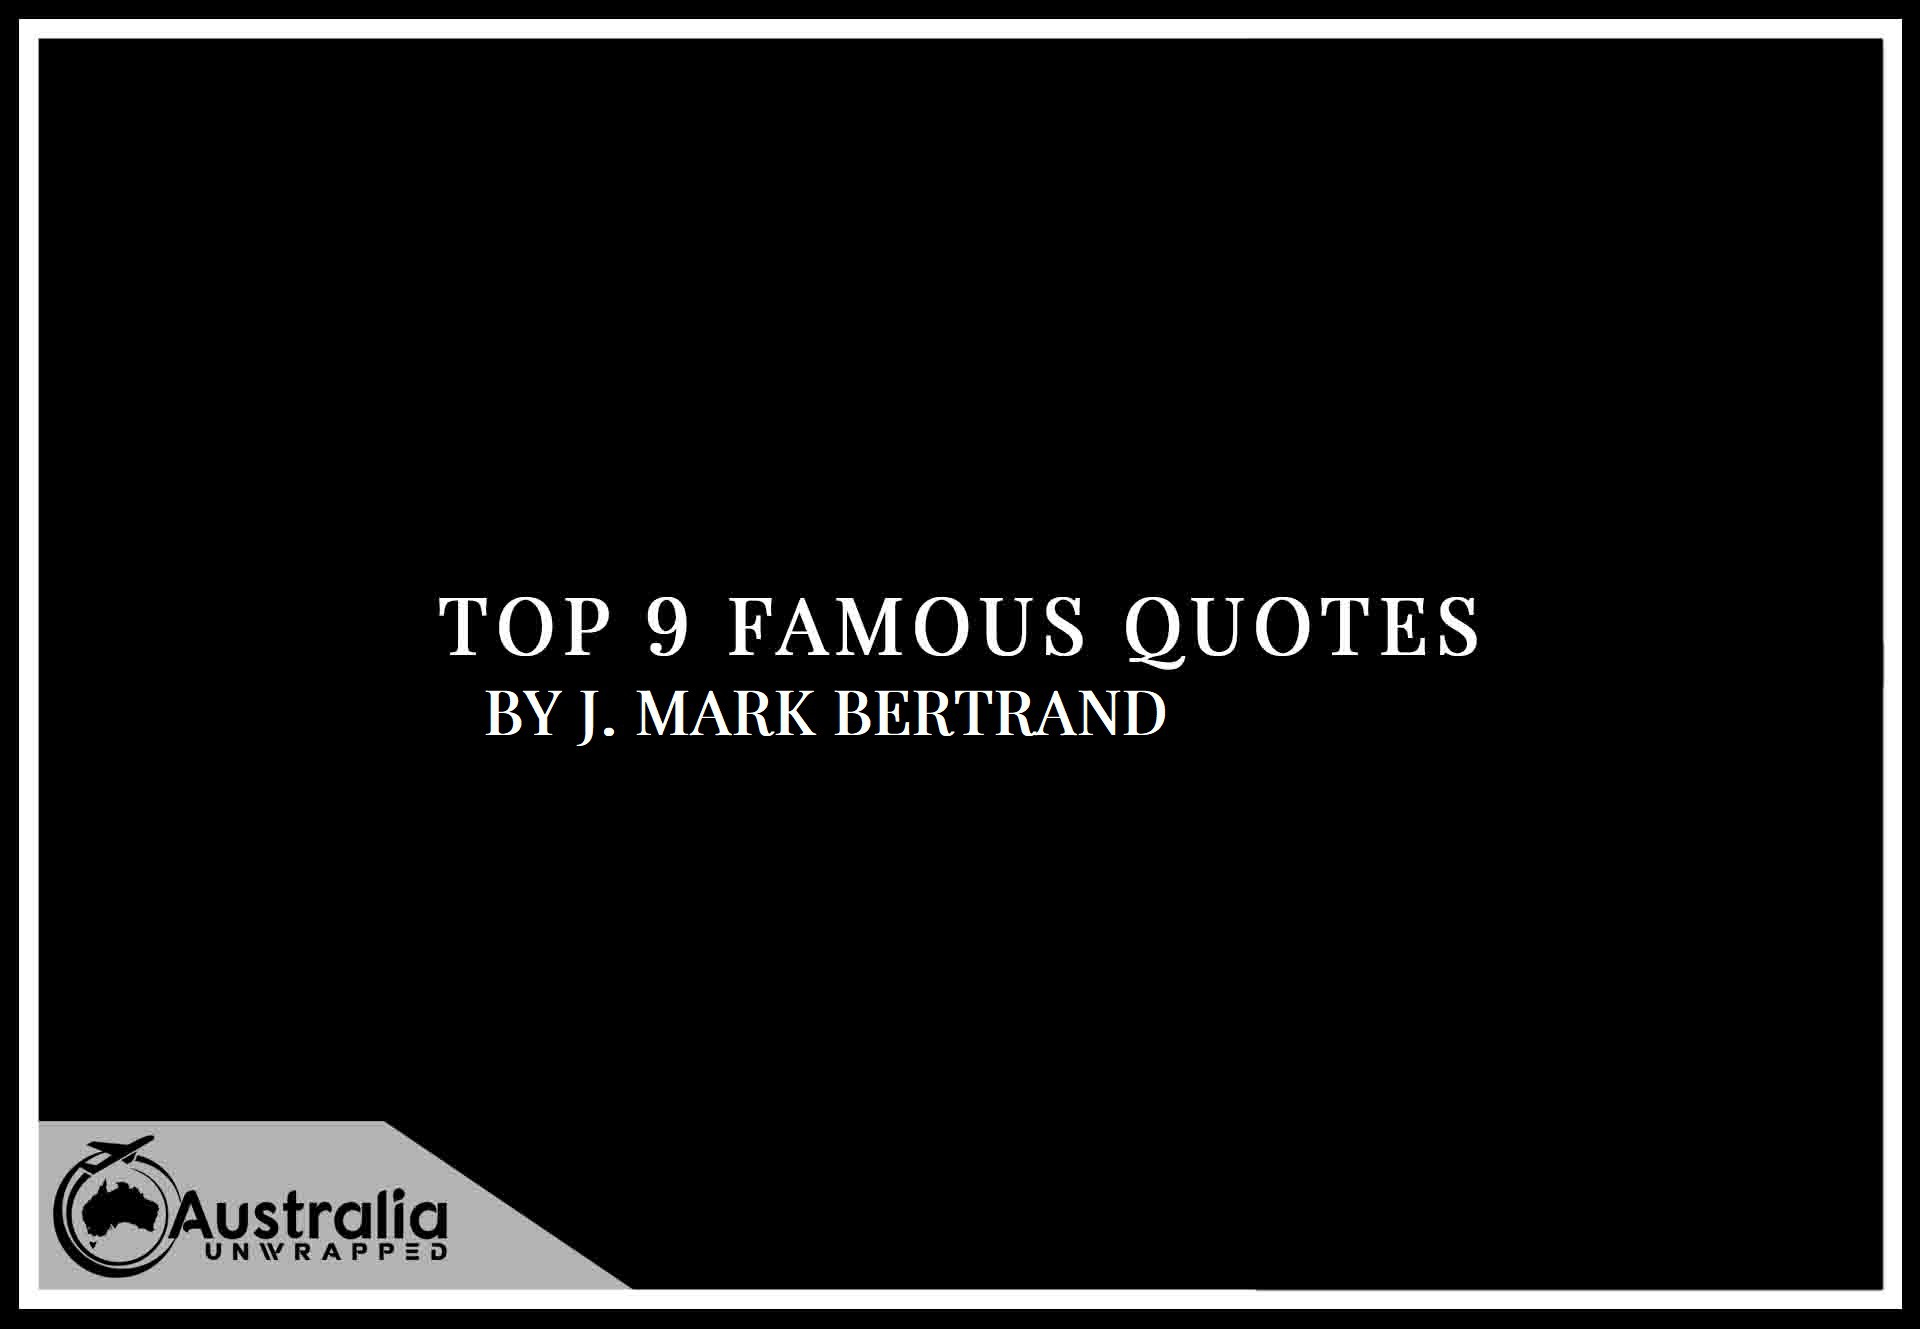 Top 9 Famous Quotes by Author J. Mark Bertrand